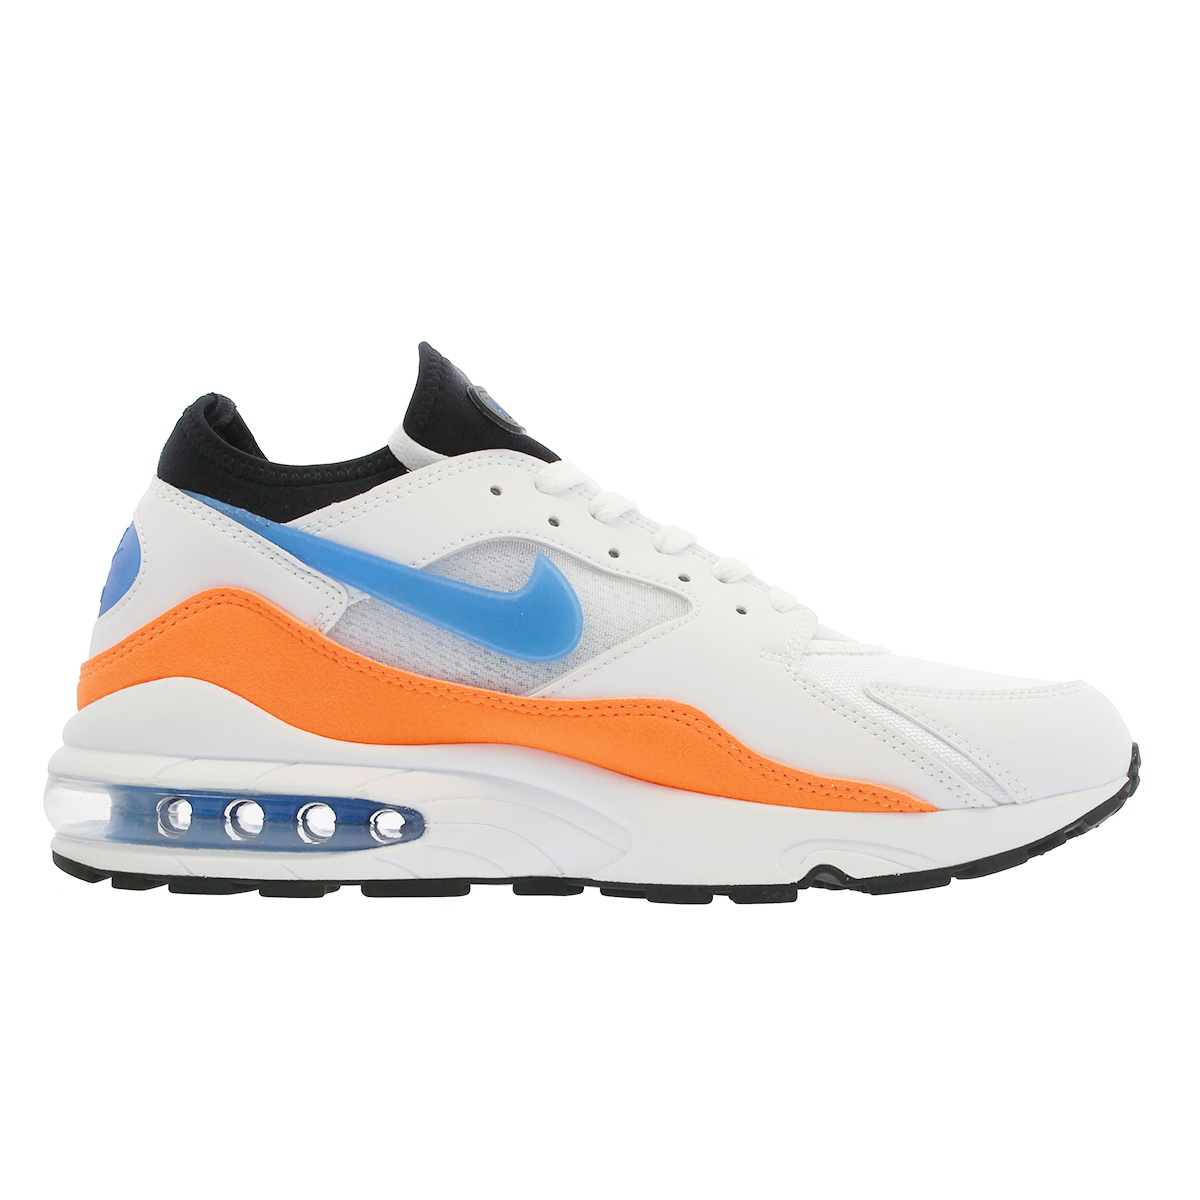 edf51fbaf60 NIKE AIR MAX 93 Kie Ney AMAX 93 WHITE BLUE NEBULA TOTAL ORANGE BLACK  306